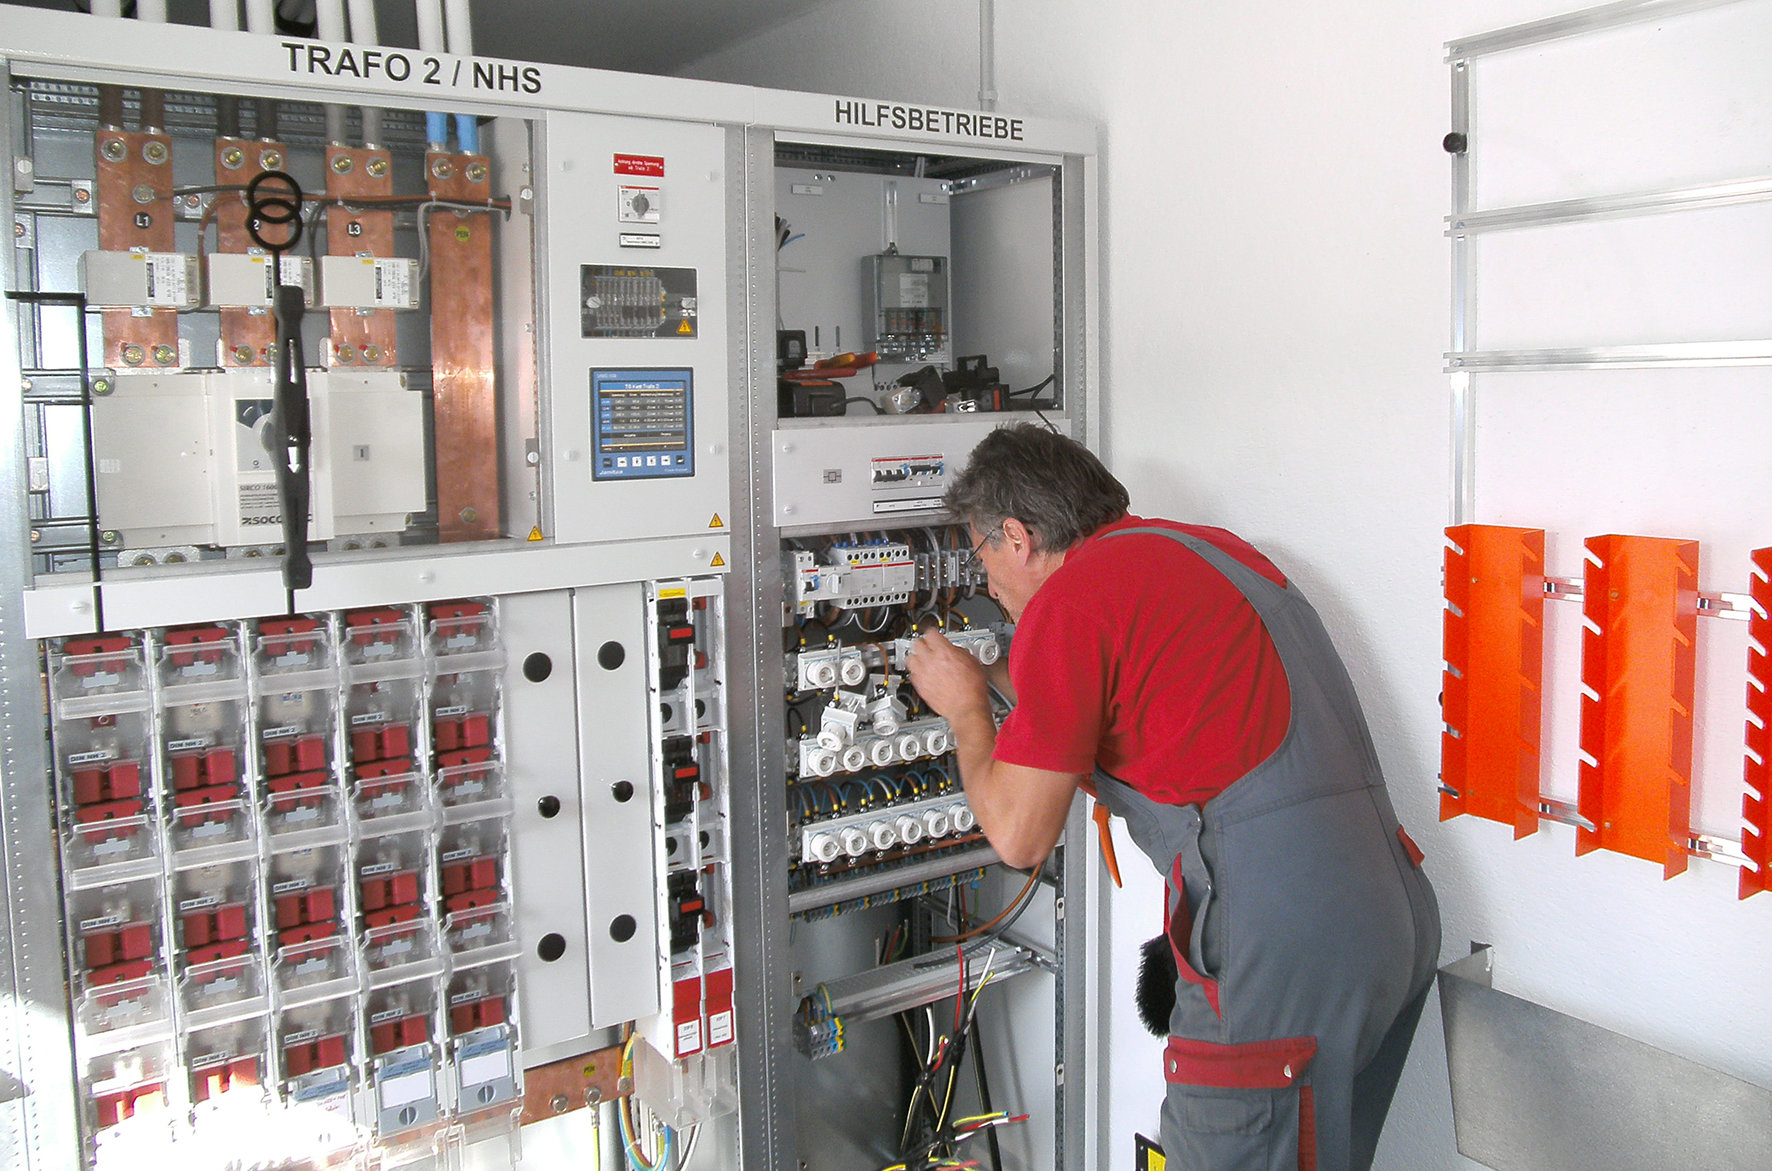 transformer stations for your distribution networks from cellpack low voltage switchgear combinations in cabinets